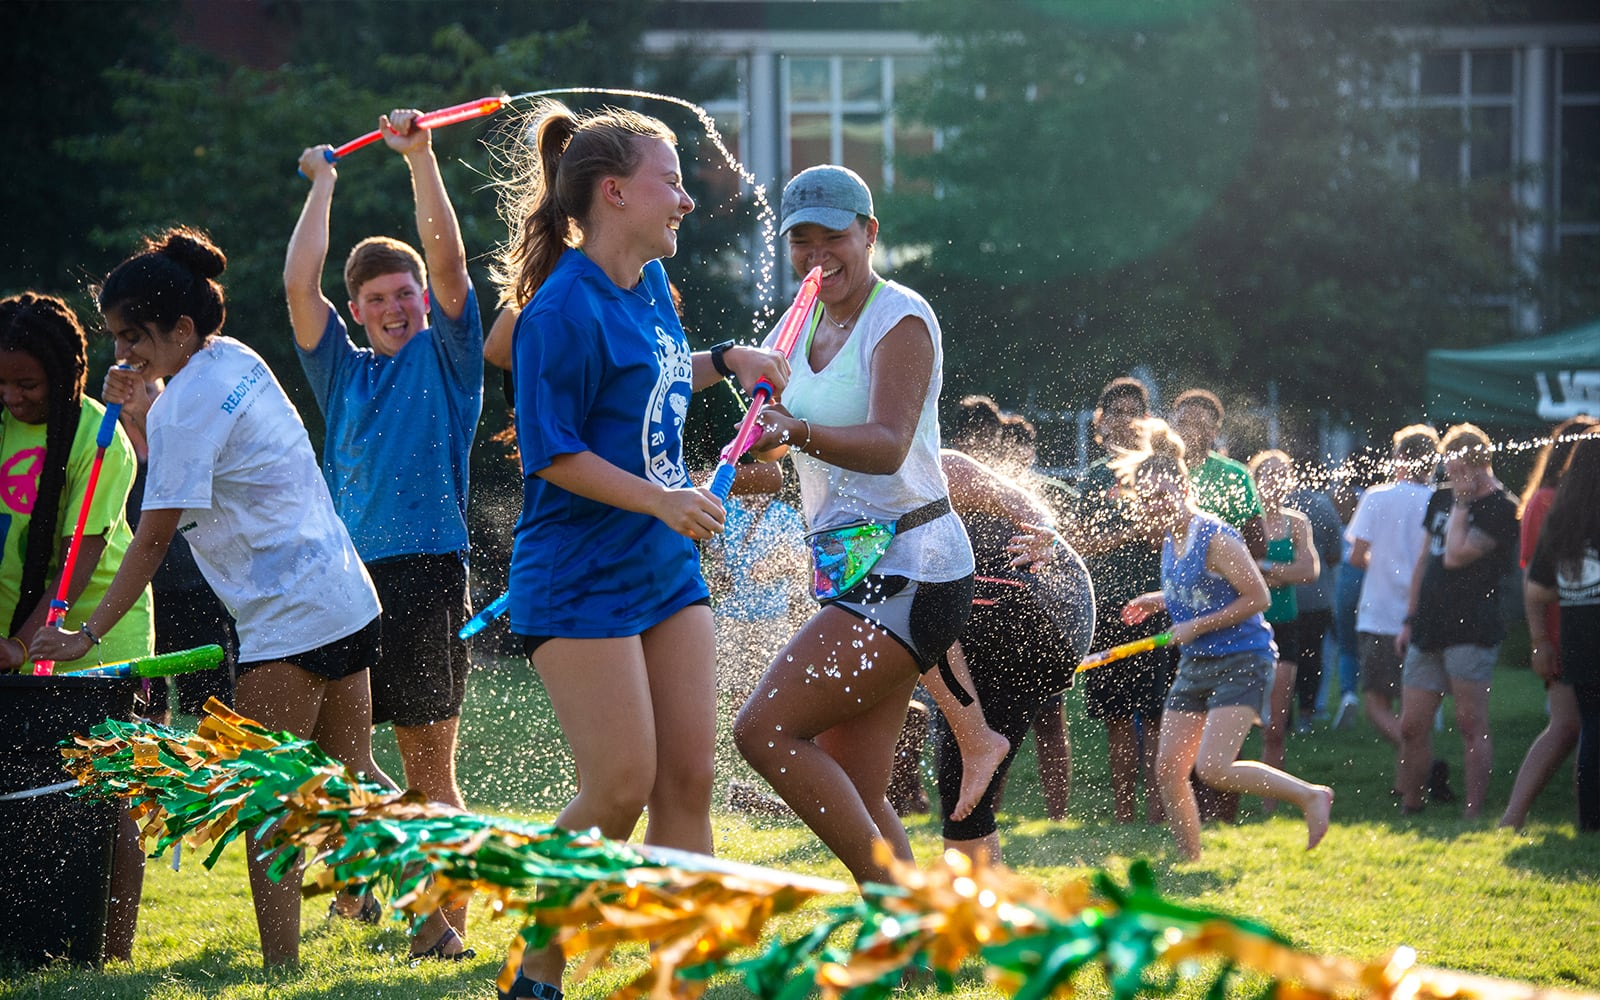 Students having water fight on campus green.